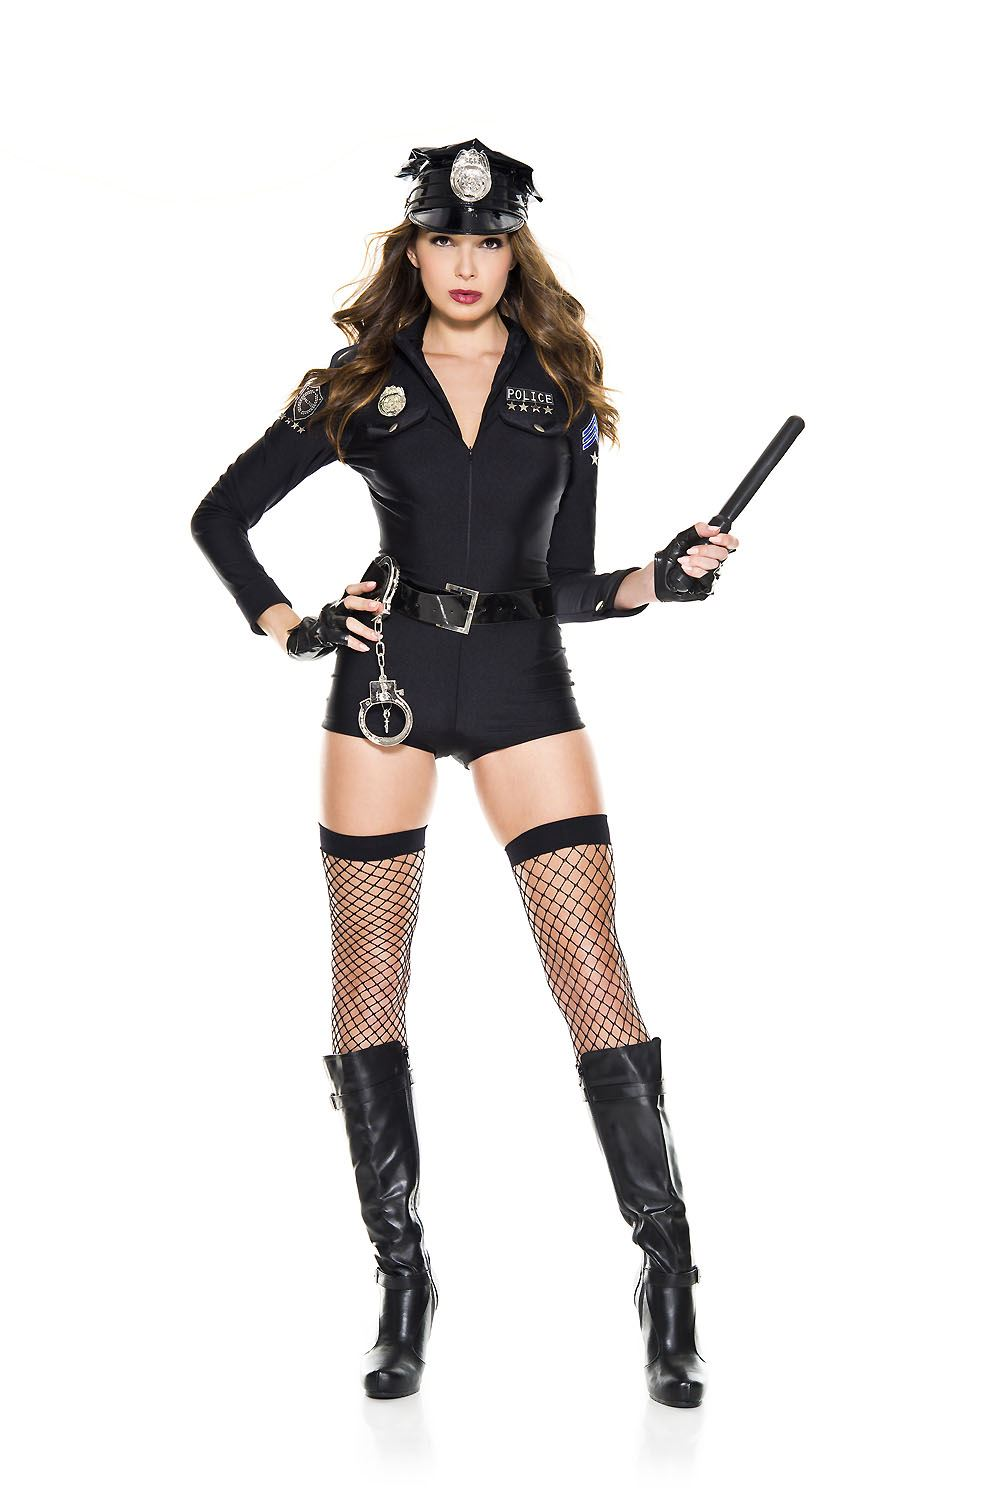 ac4c8a547ed Adult Cop Woman Police Officer Costume